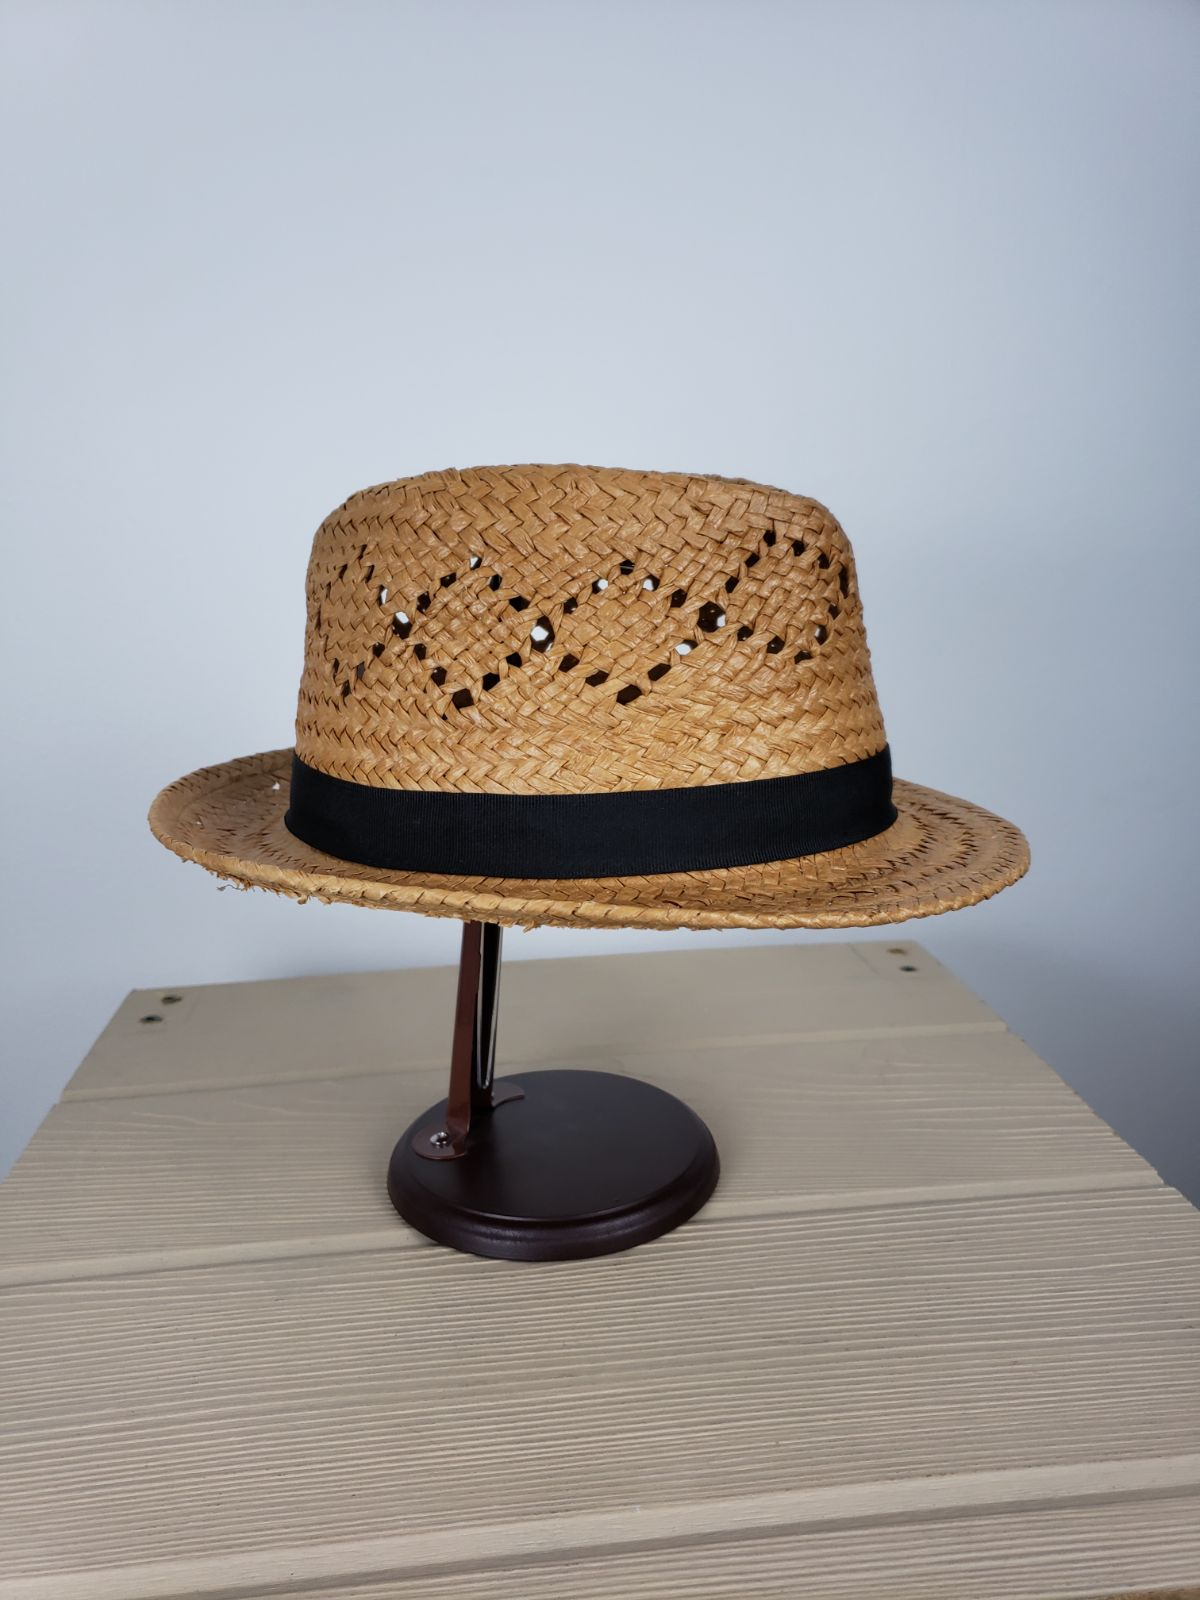 Dockers Men's Straw Hat